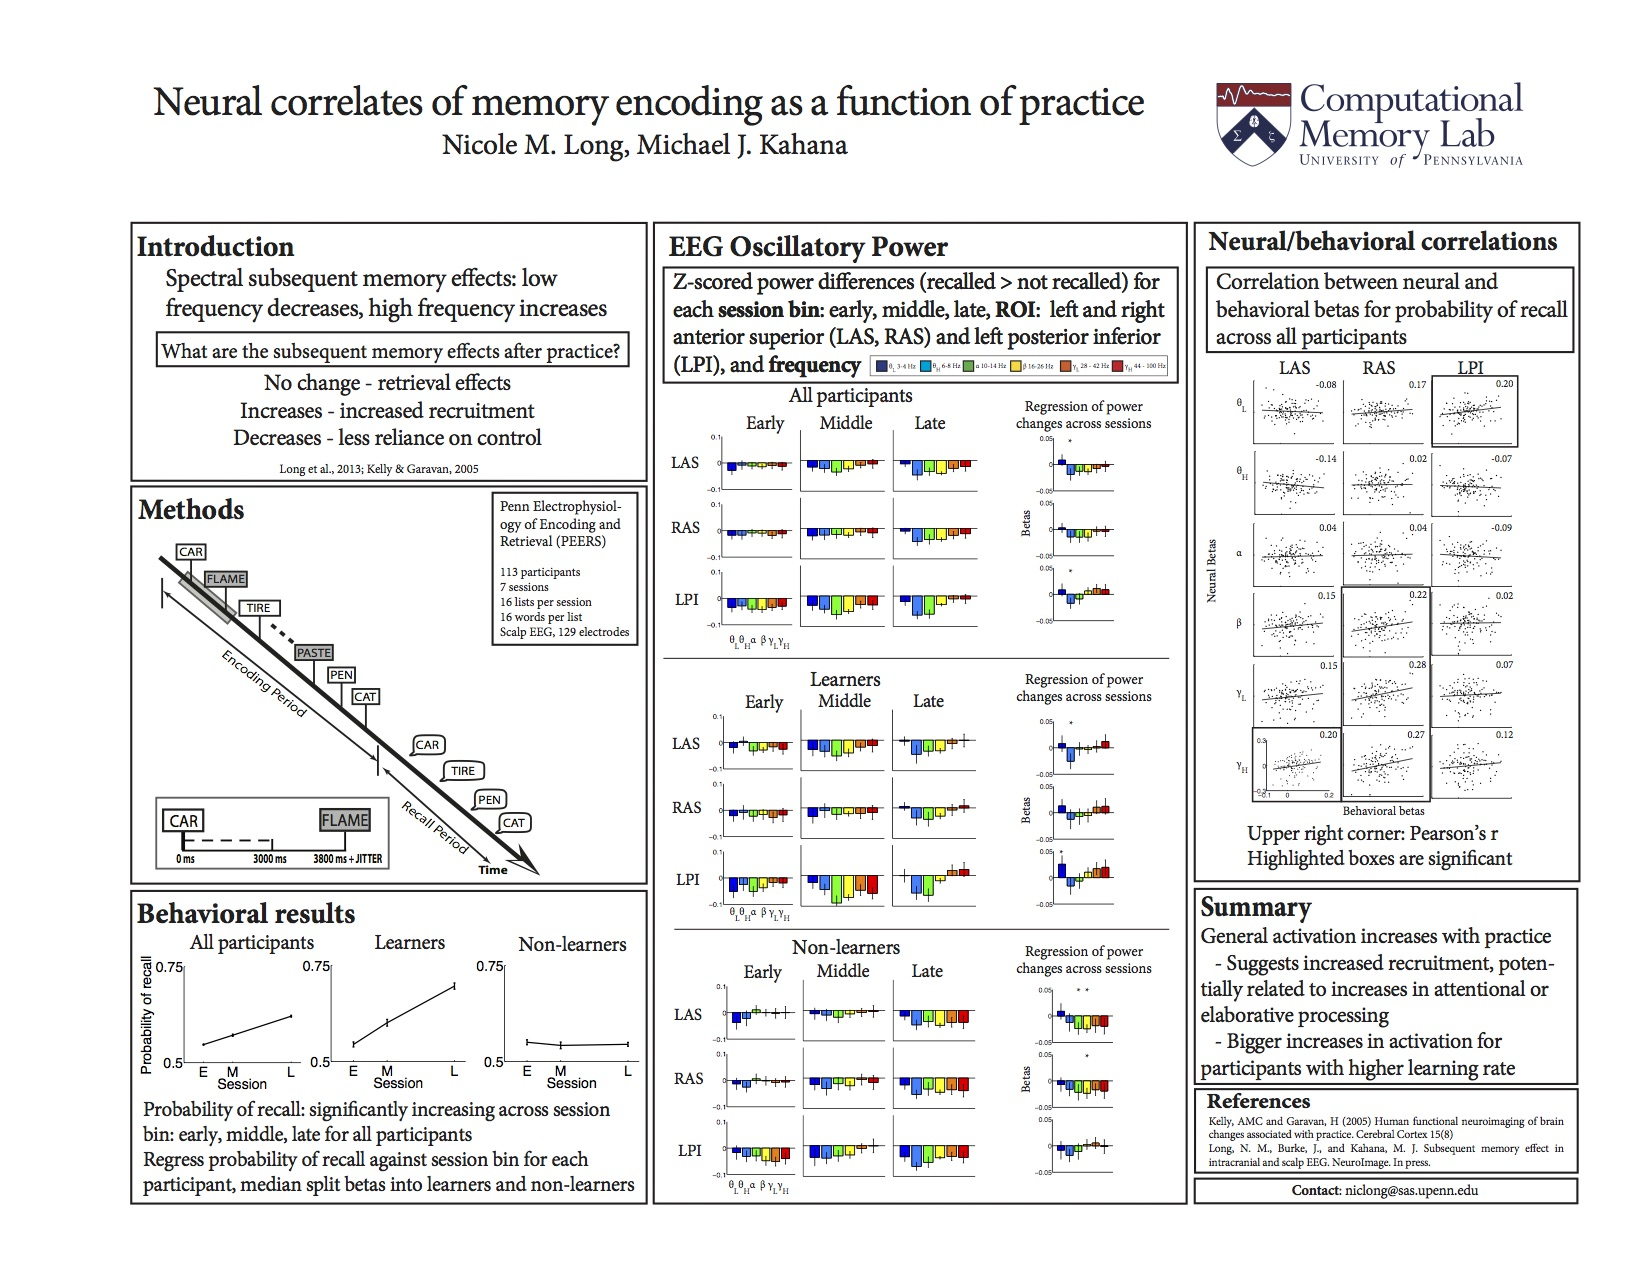 Neural correlates of memory encoding as a function of practice